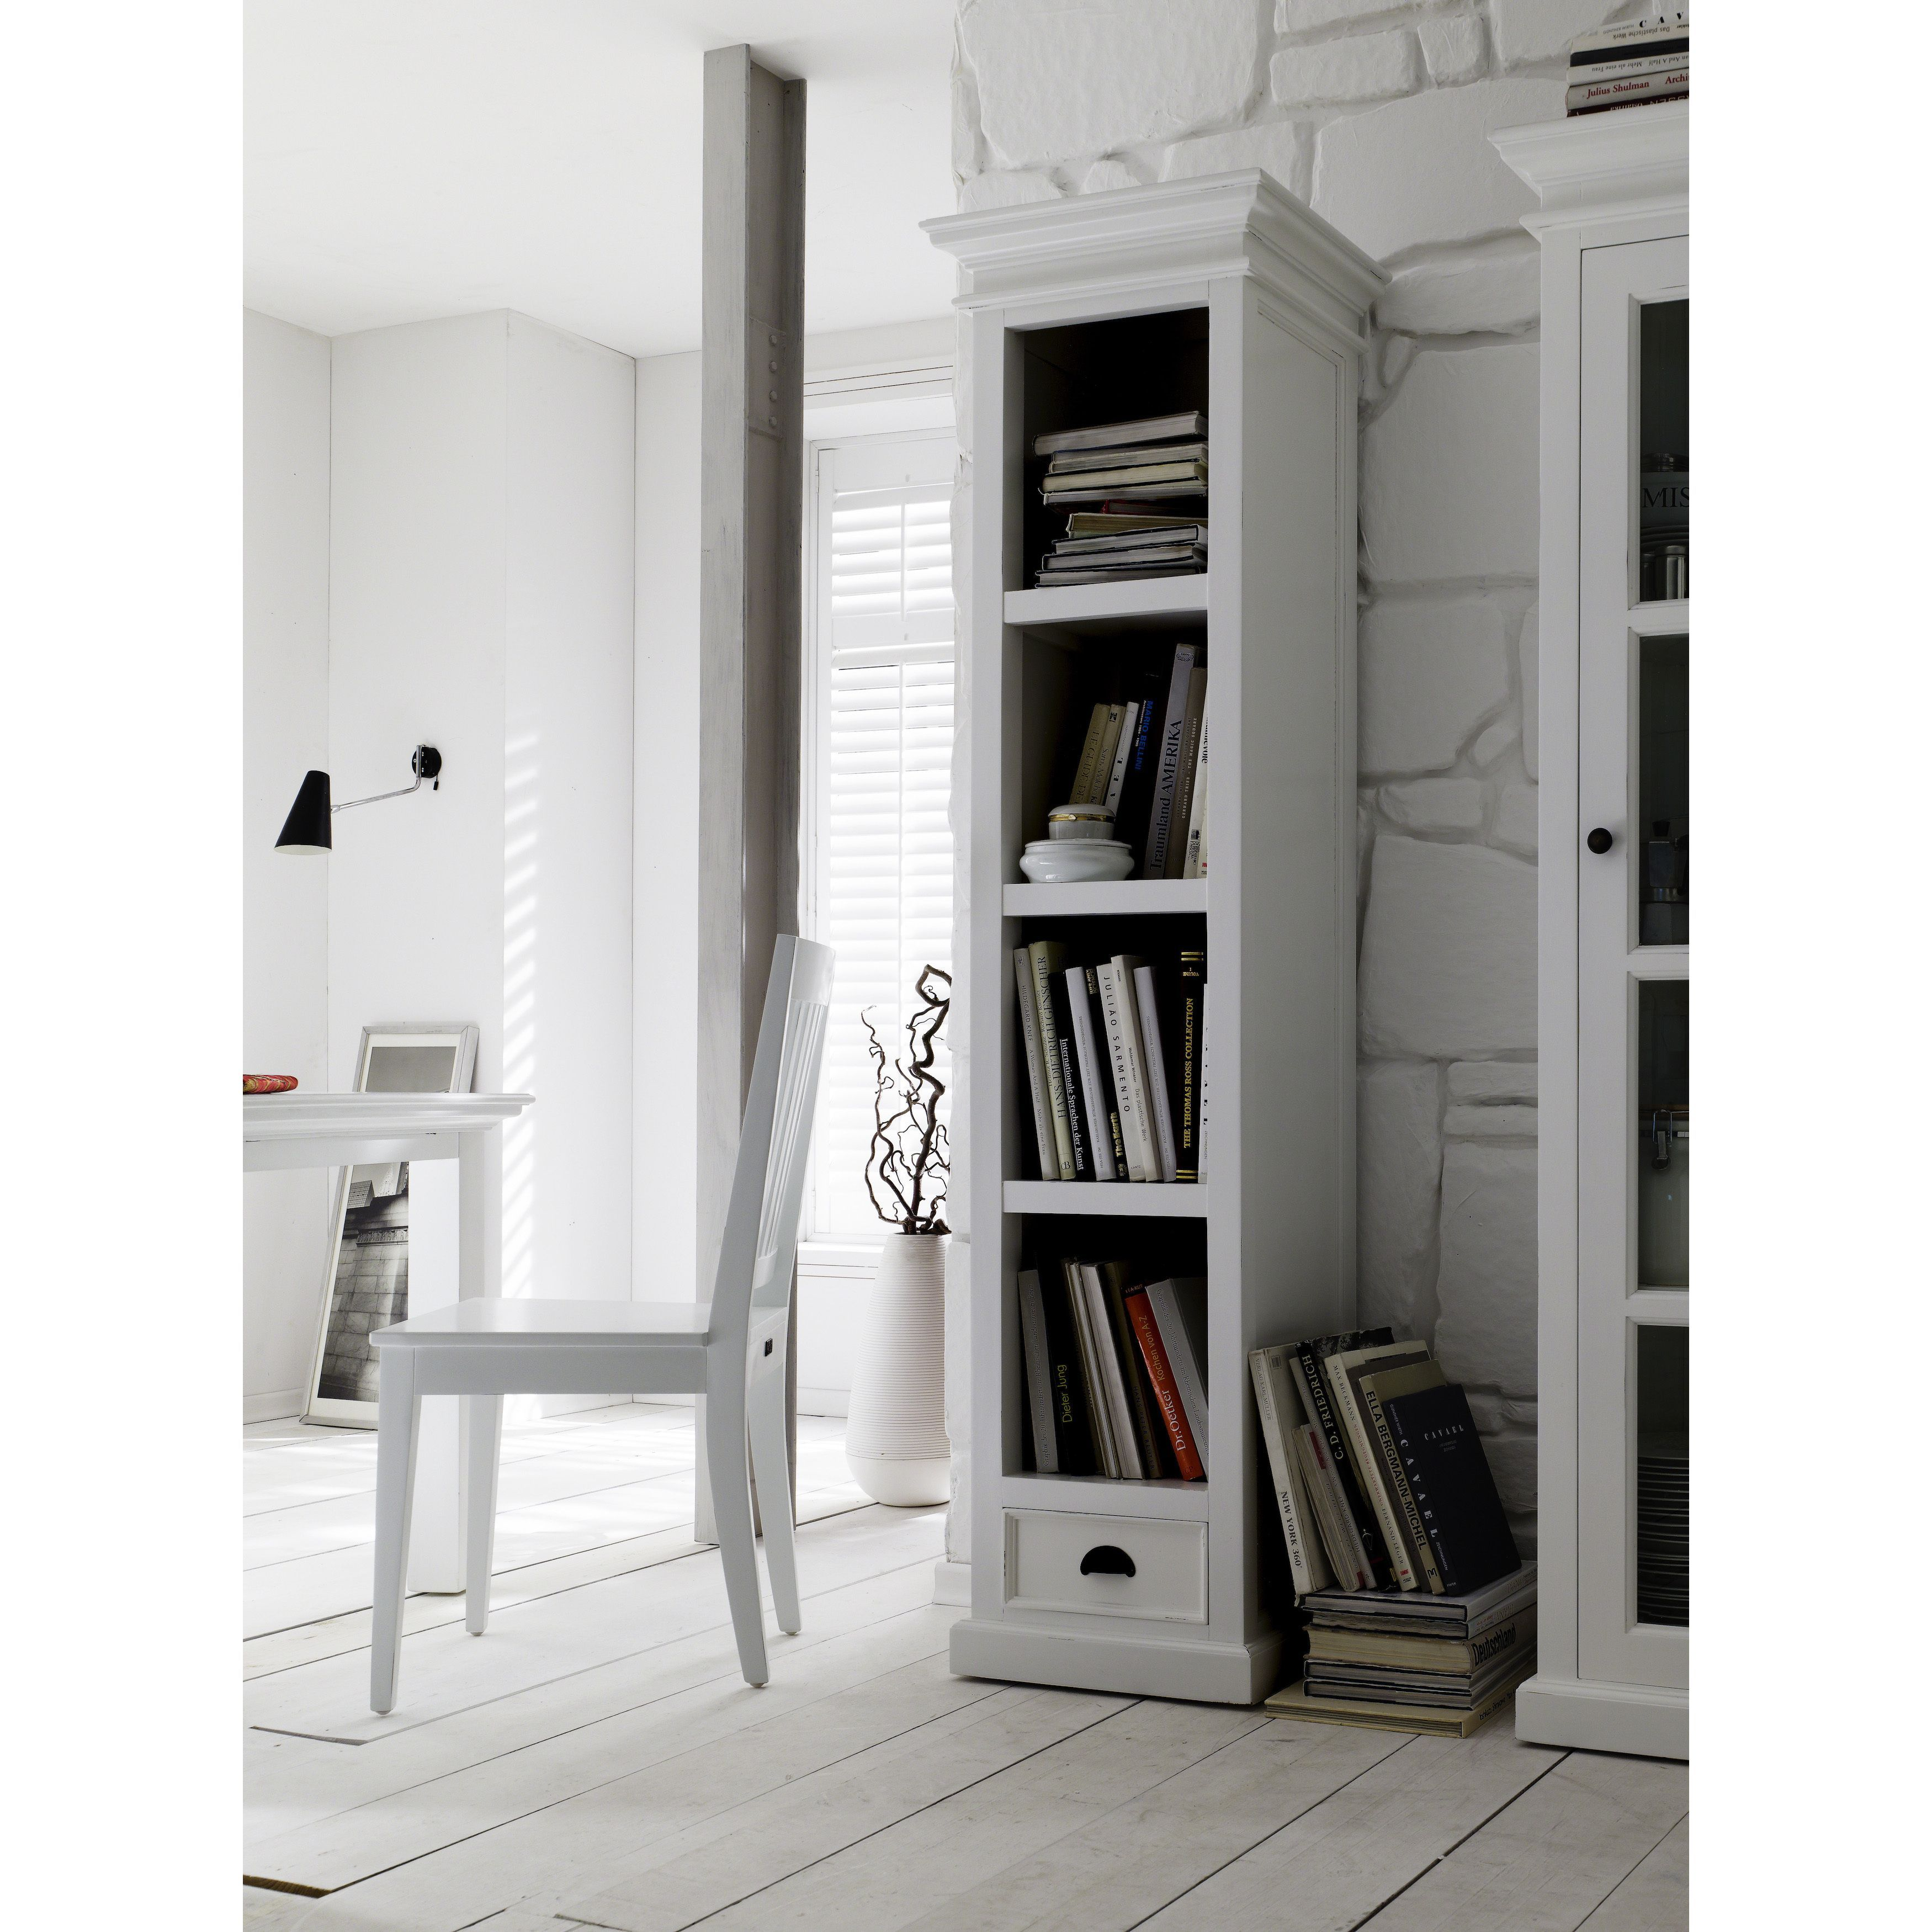 Display Not Just Books But Collectibles As Well This Classic Bookshelf Features Detailed Wooden BookcasesClassic BookshelvesBookcase With DrawersWhite